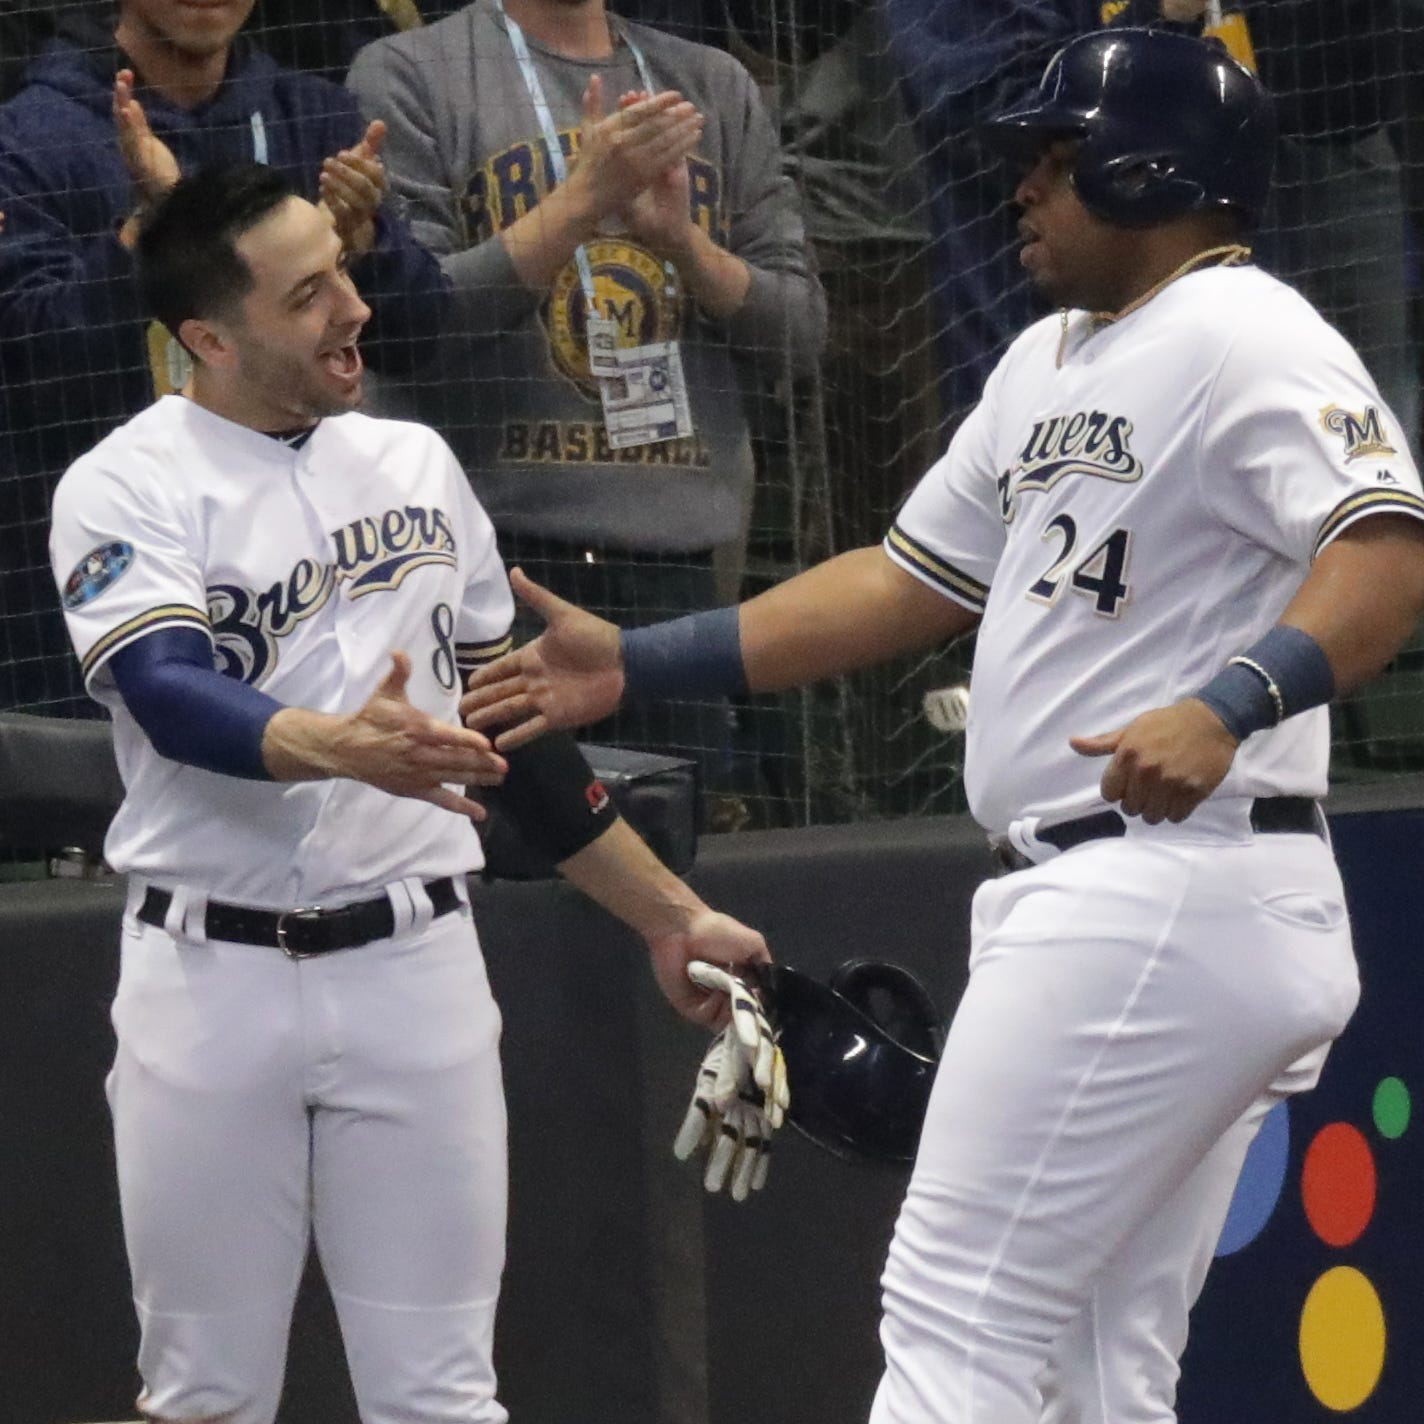 Brewers 7, Dodgers 2: The offense wakes up to take the NLCS to Game 7